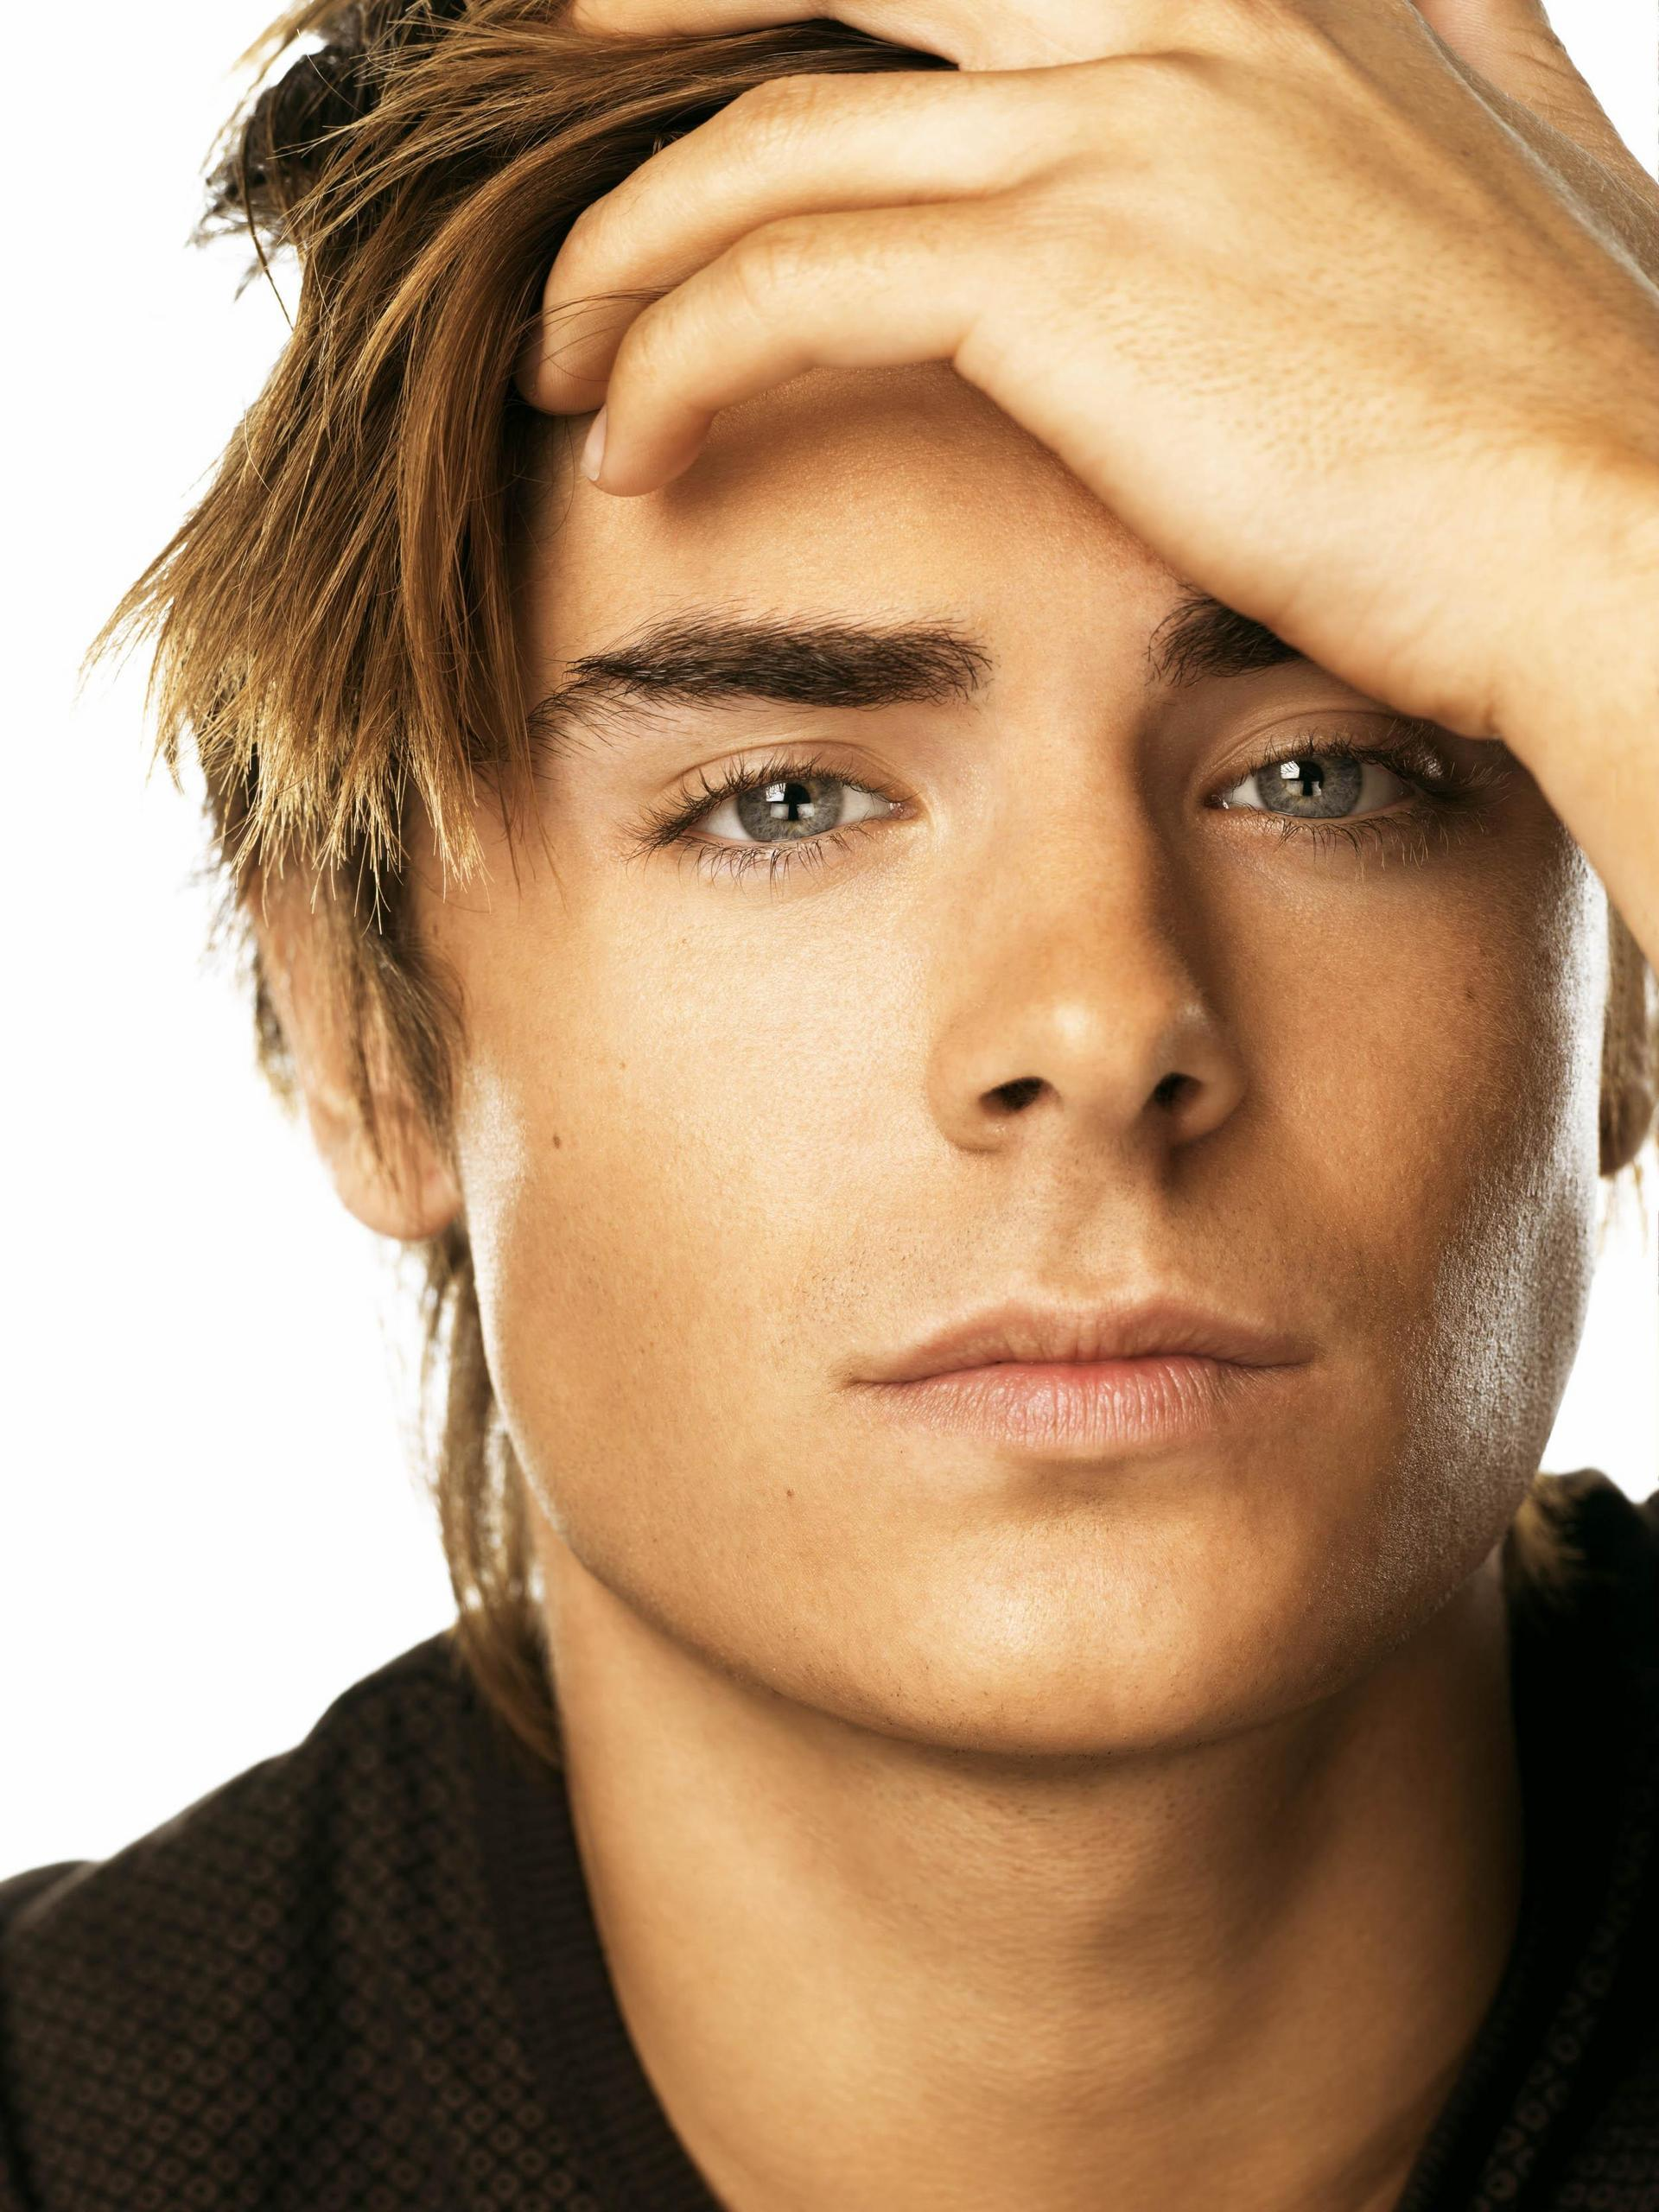 Zac Zac Efron Photo 1333721 Fanpop